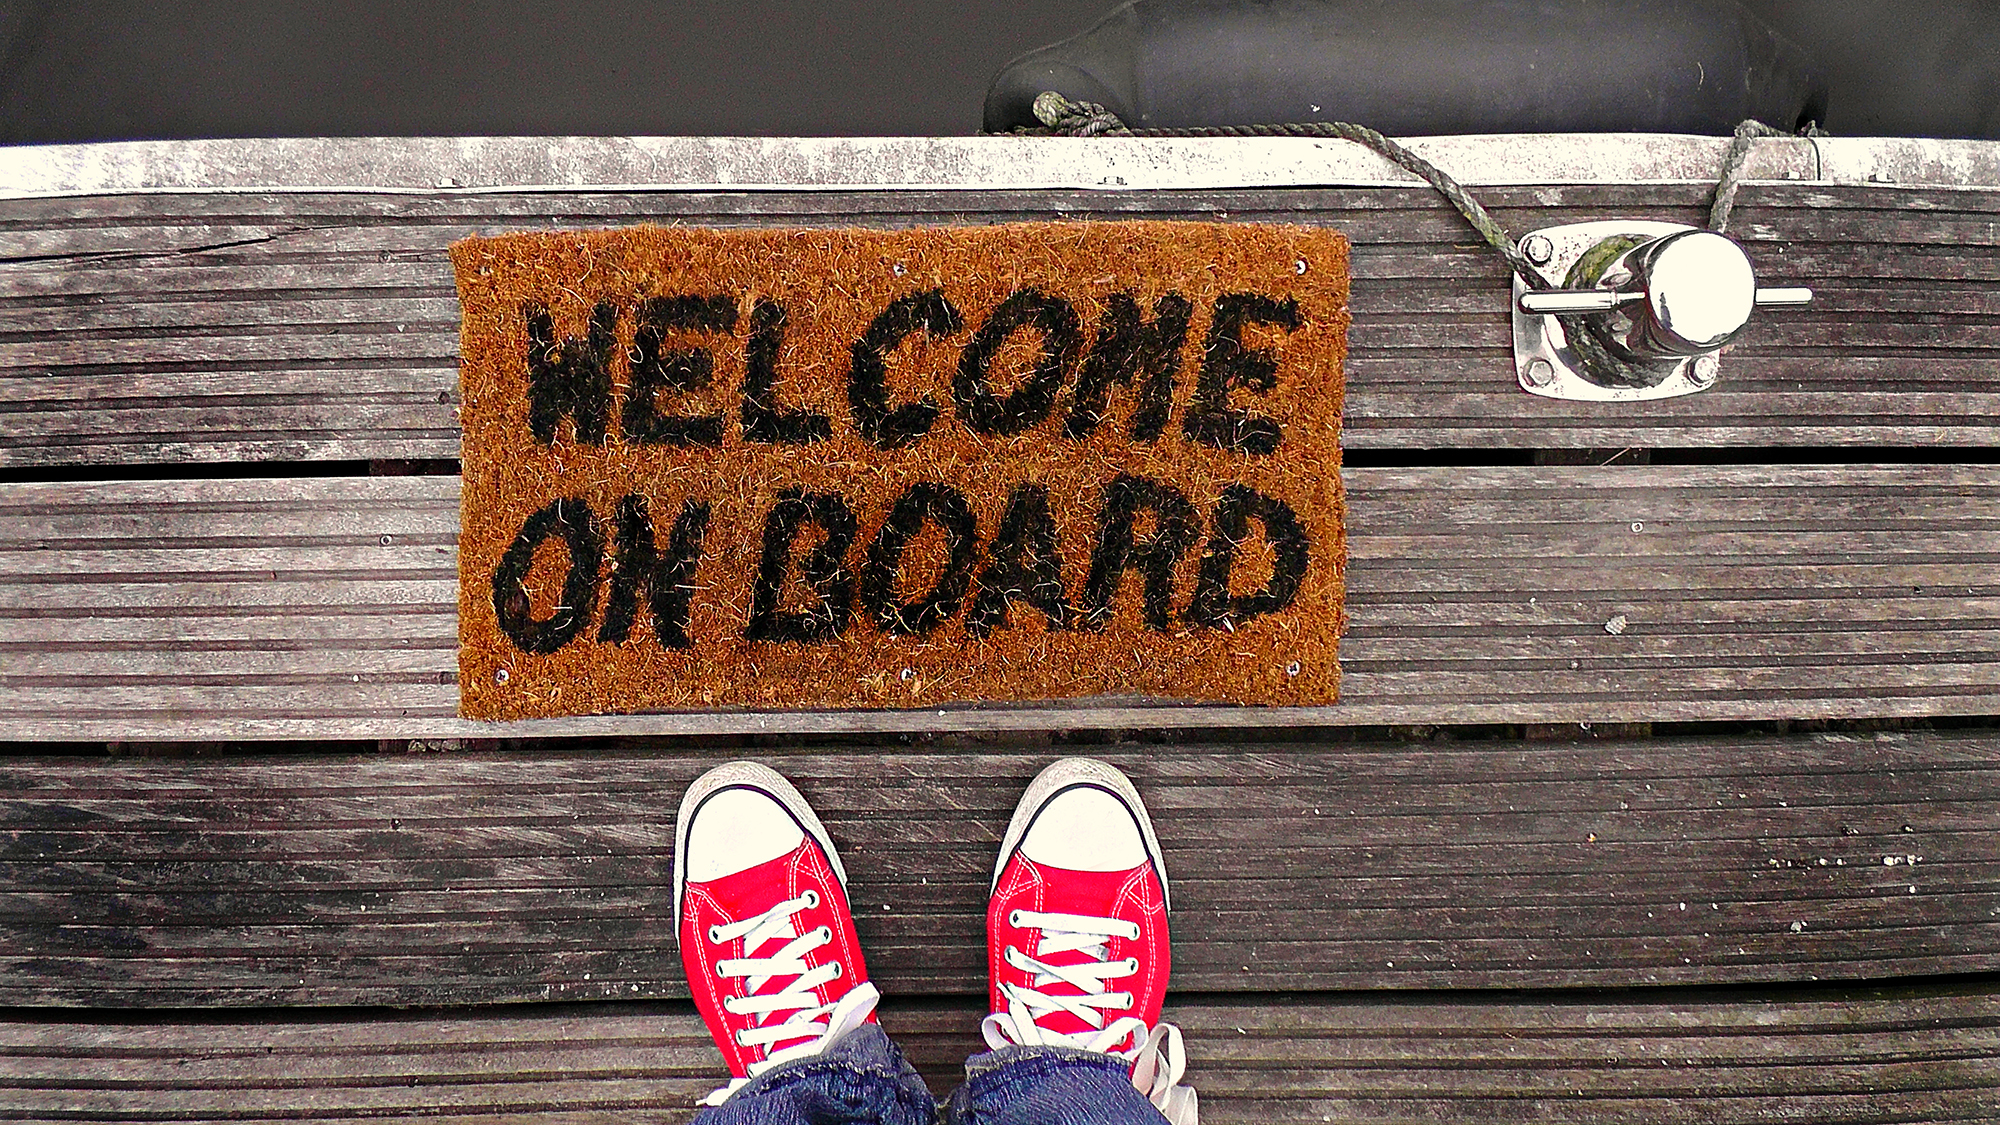 Onboarding New Employees Is So Much More Than Paperwork